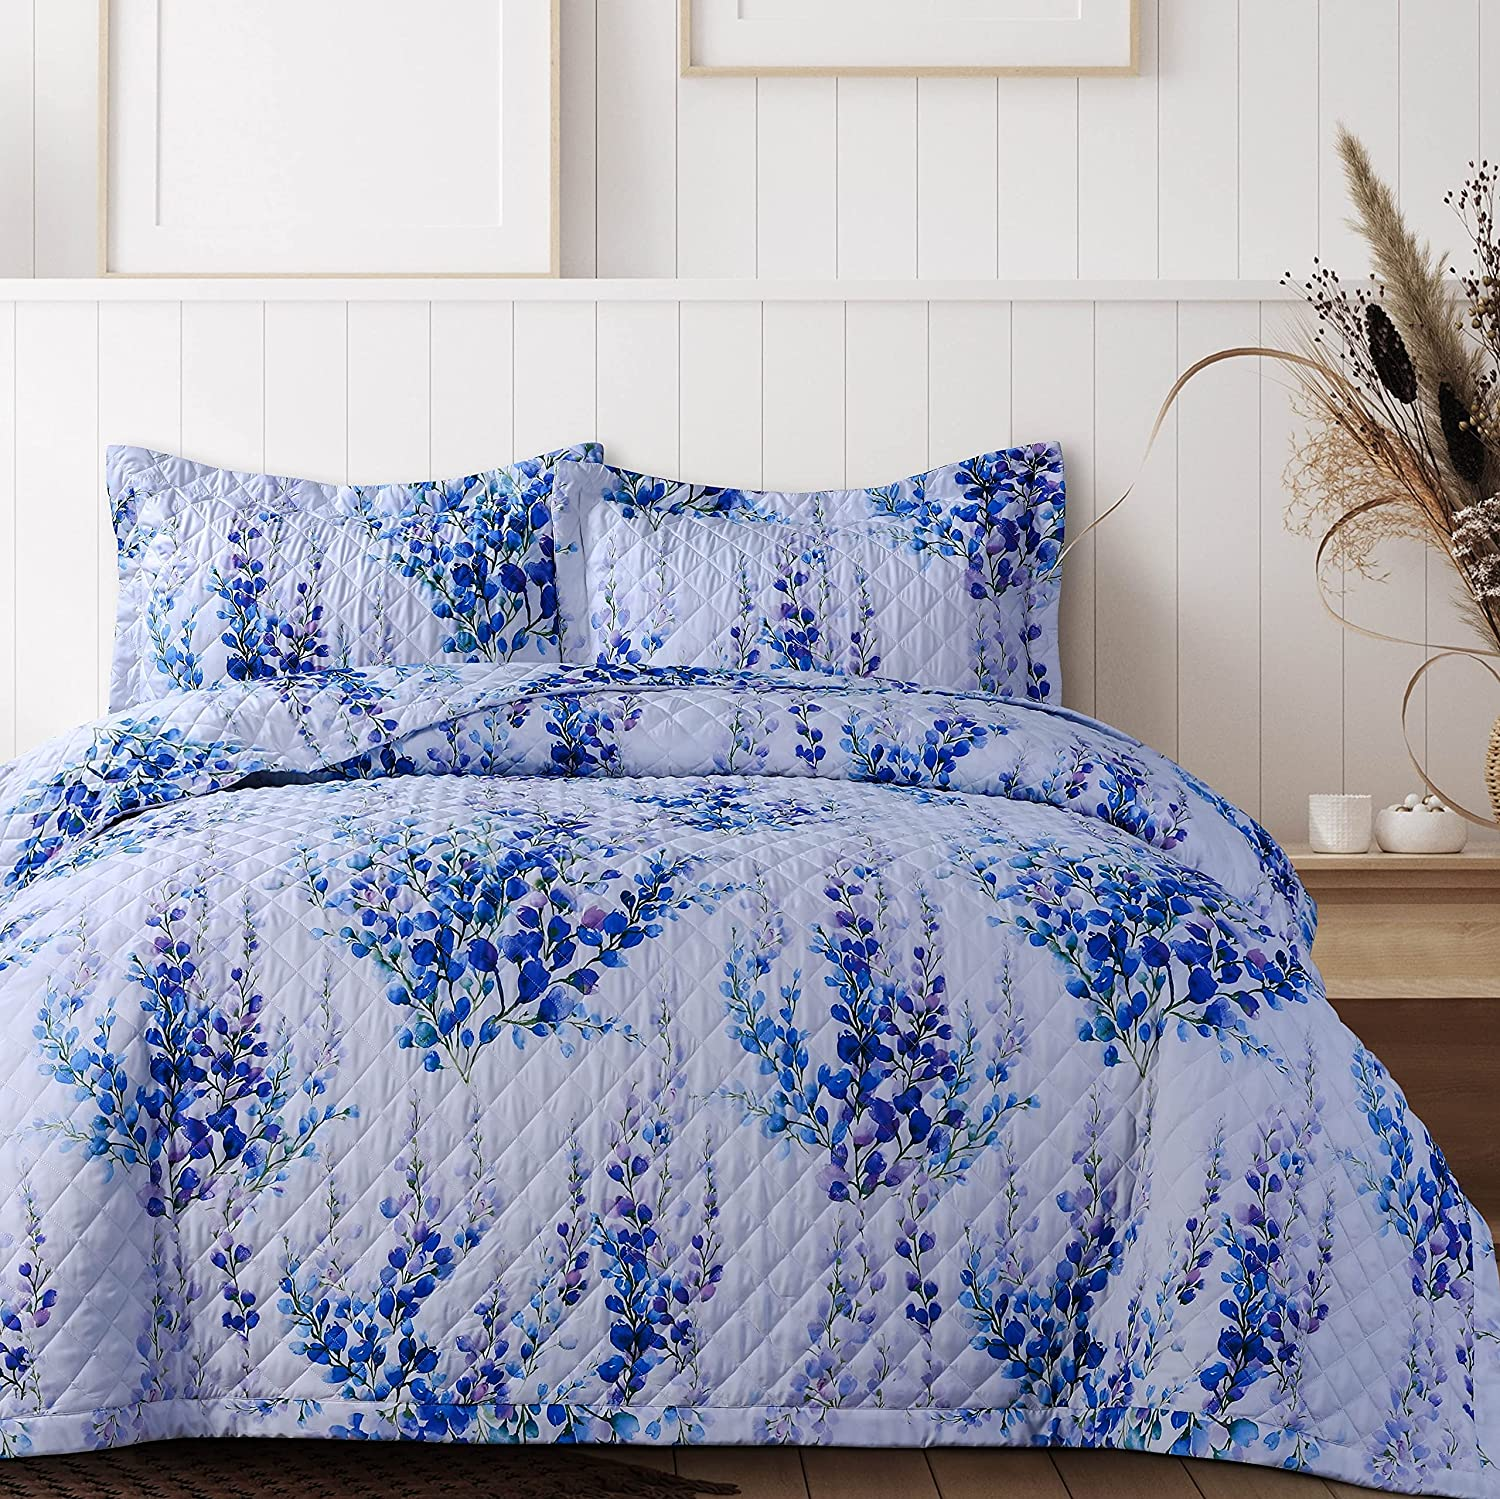 cheap Excellent AZORES HOME 110PRQUI Floral Printed Quilt Queen Set Oversized